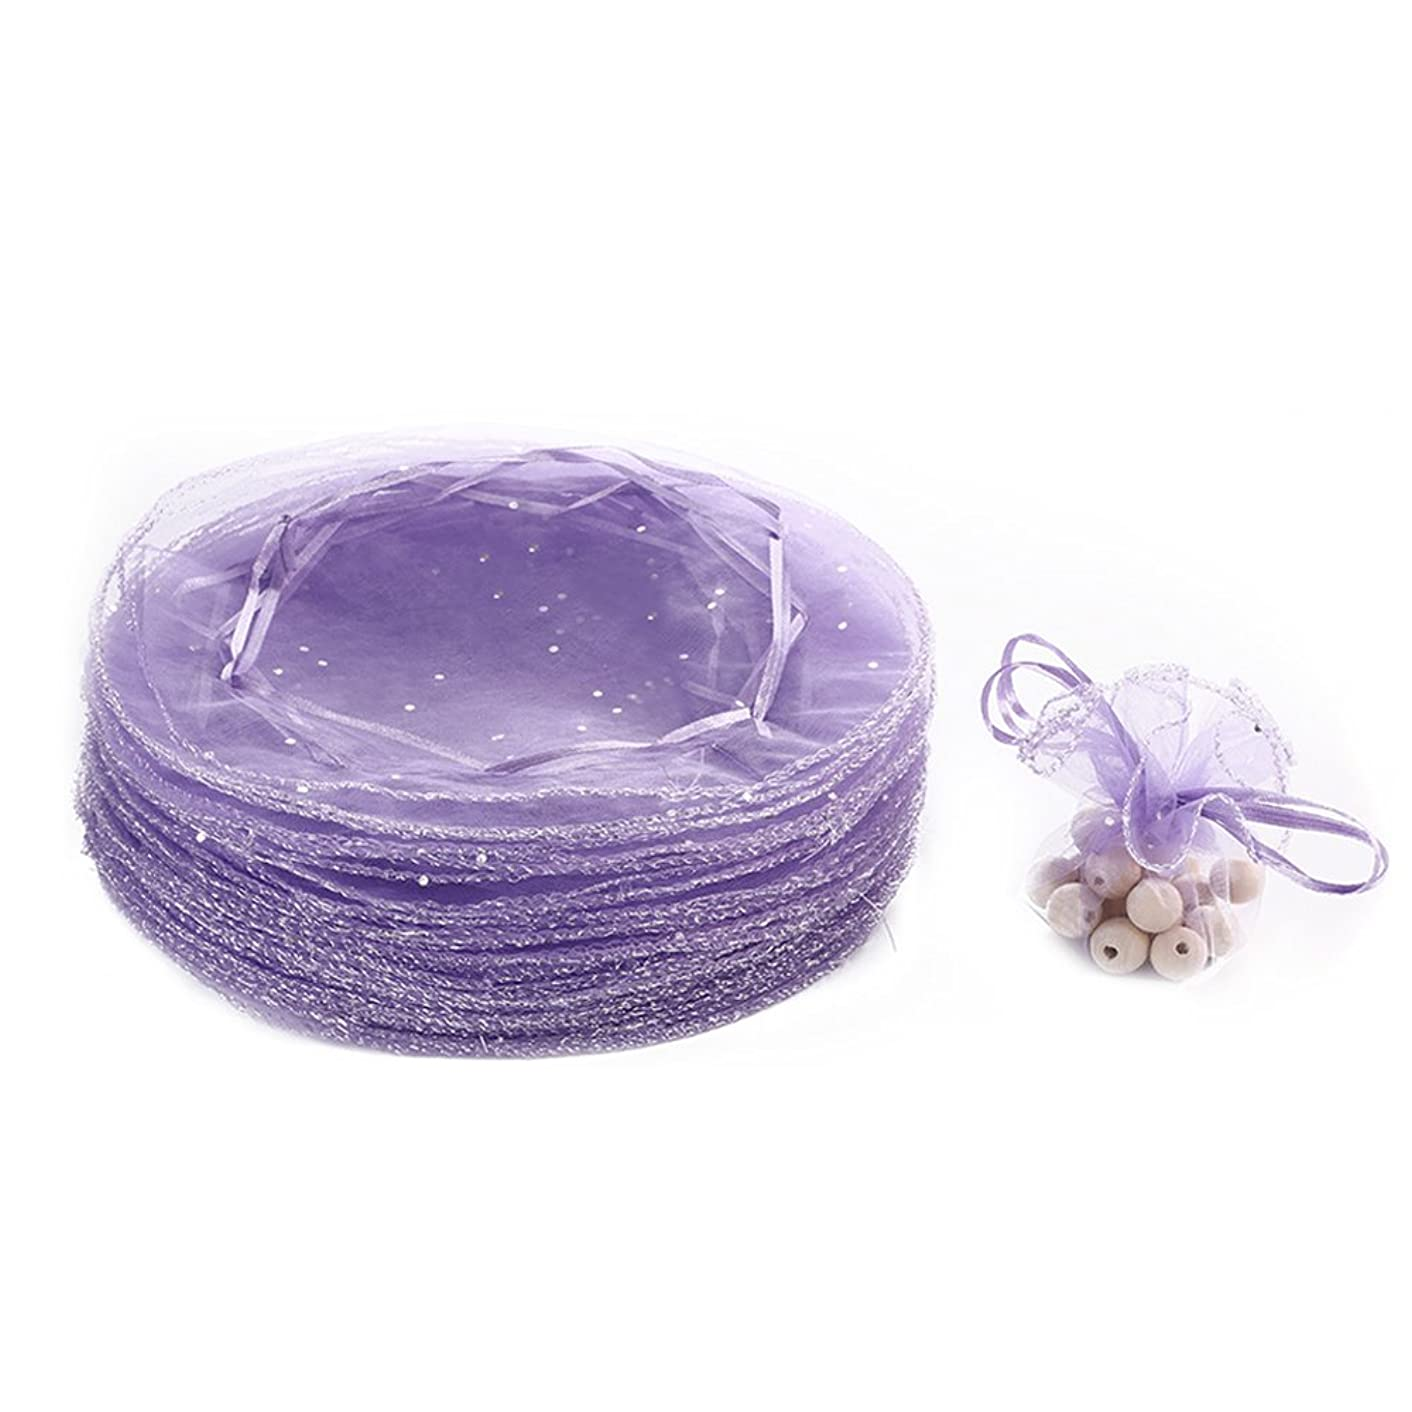 Dealglad 50pcs 25cm Round Drawstring Organza Jewelry Candy Pouch Christmas Wedding Party Favor Gift Packaging Bags (Light Purple)